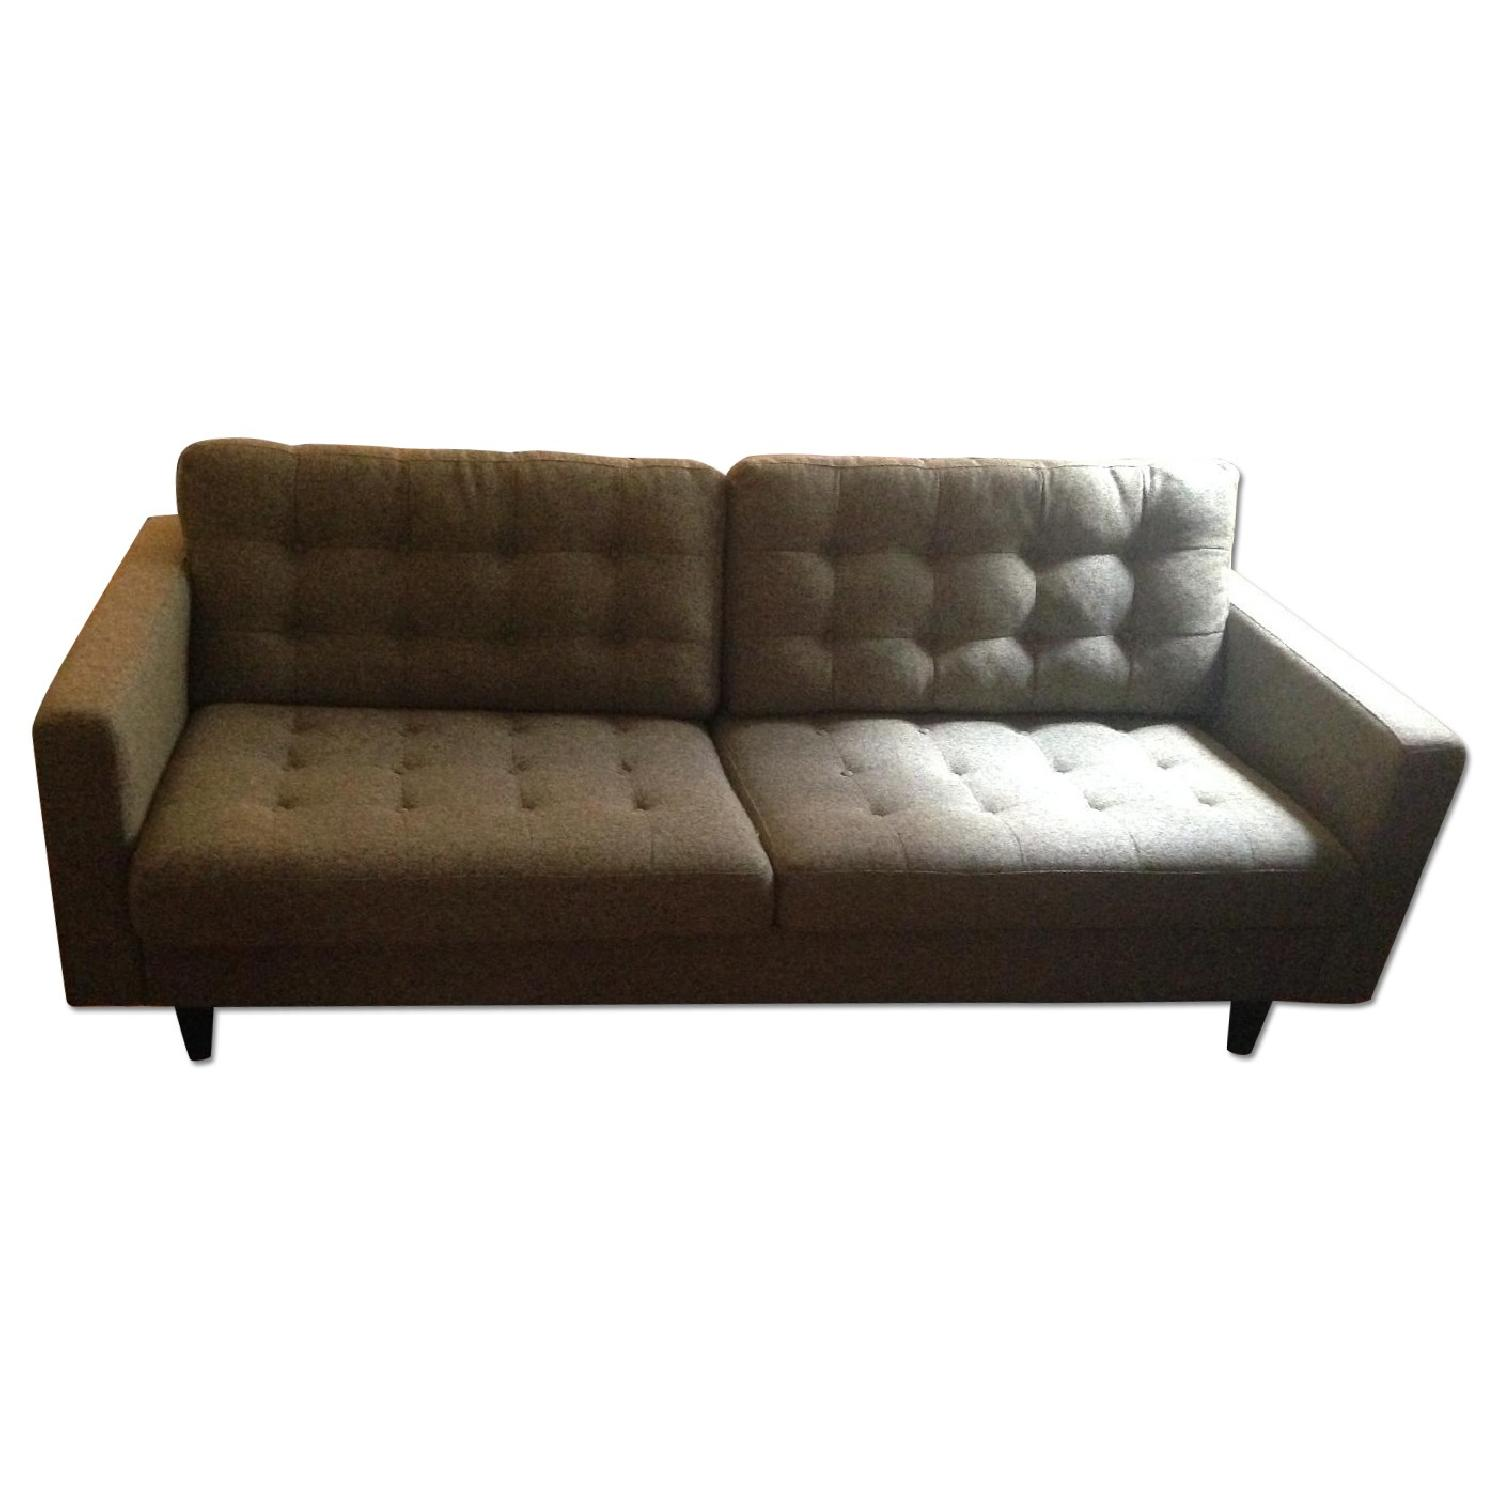 Modway Sofa in Oatmeal - image-0